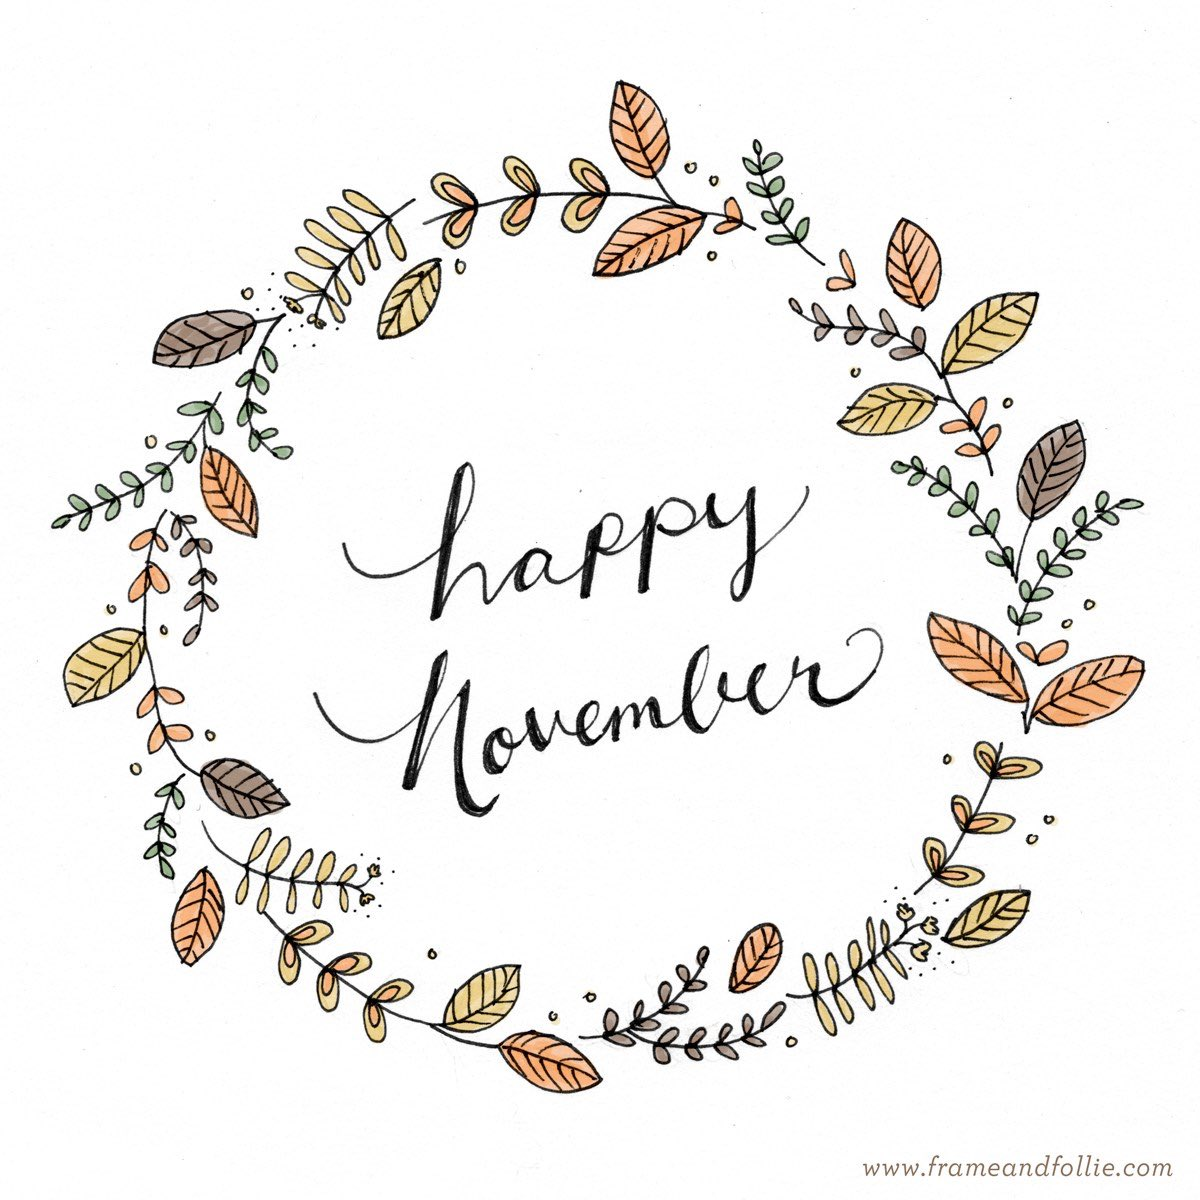 November Happy pictures